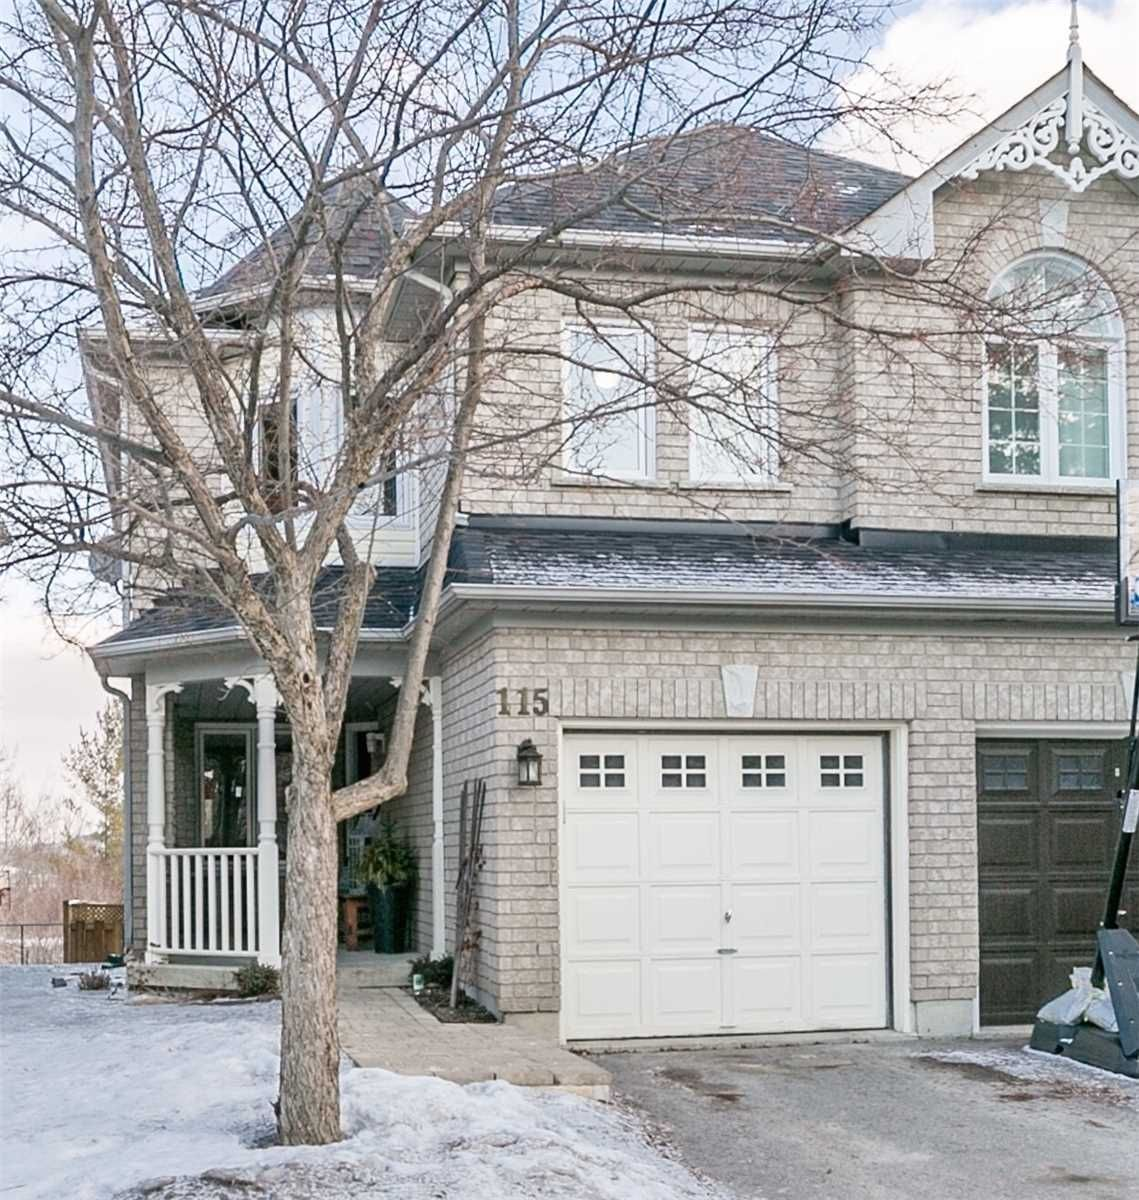 115 Woodroof Crescent for sale